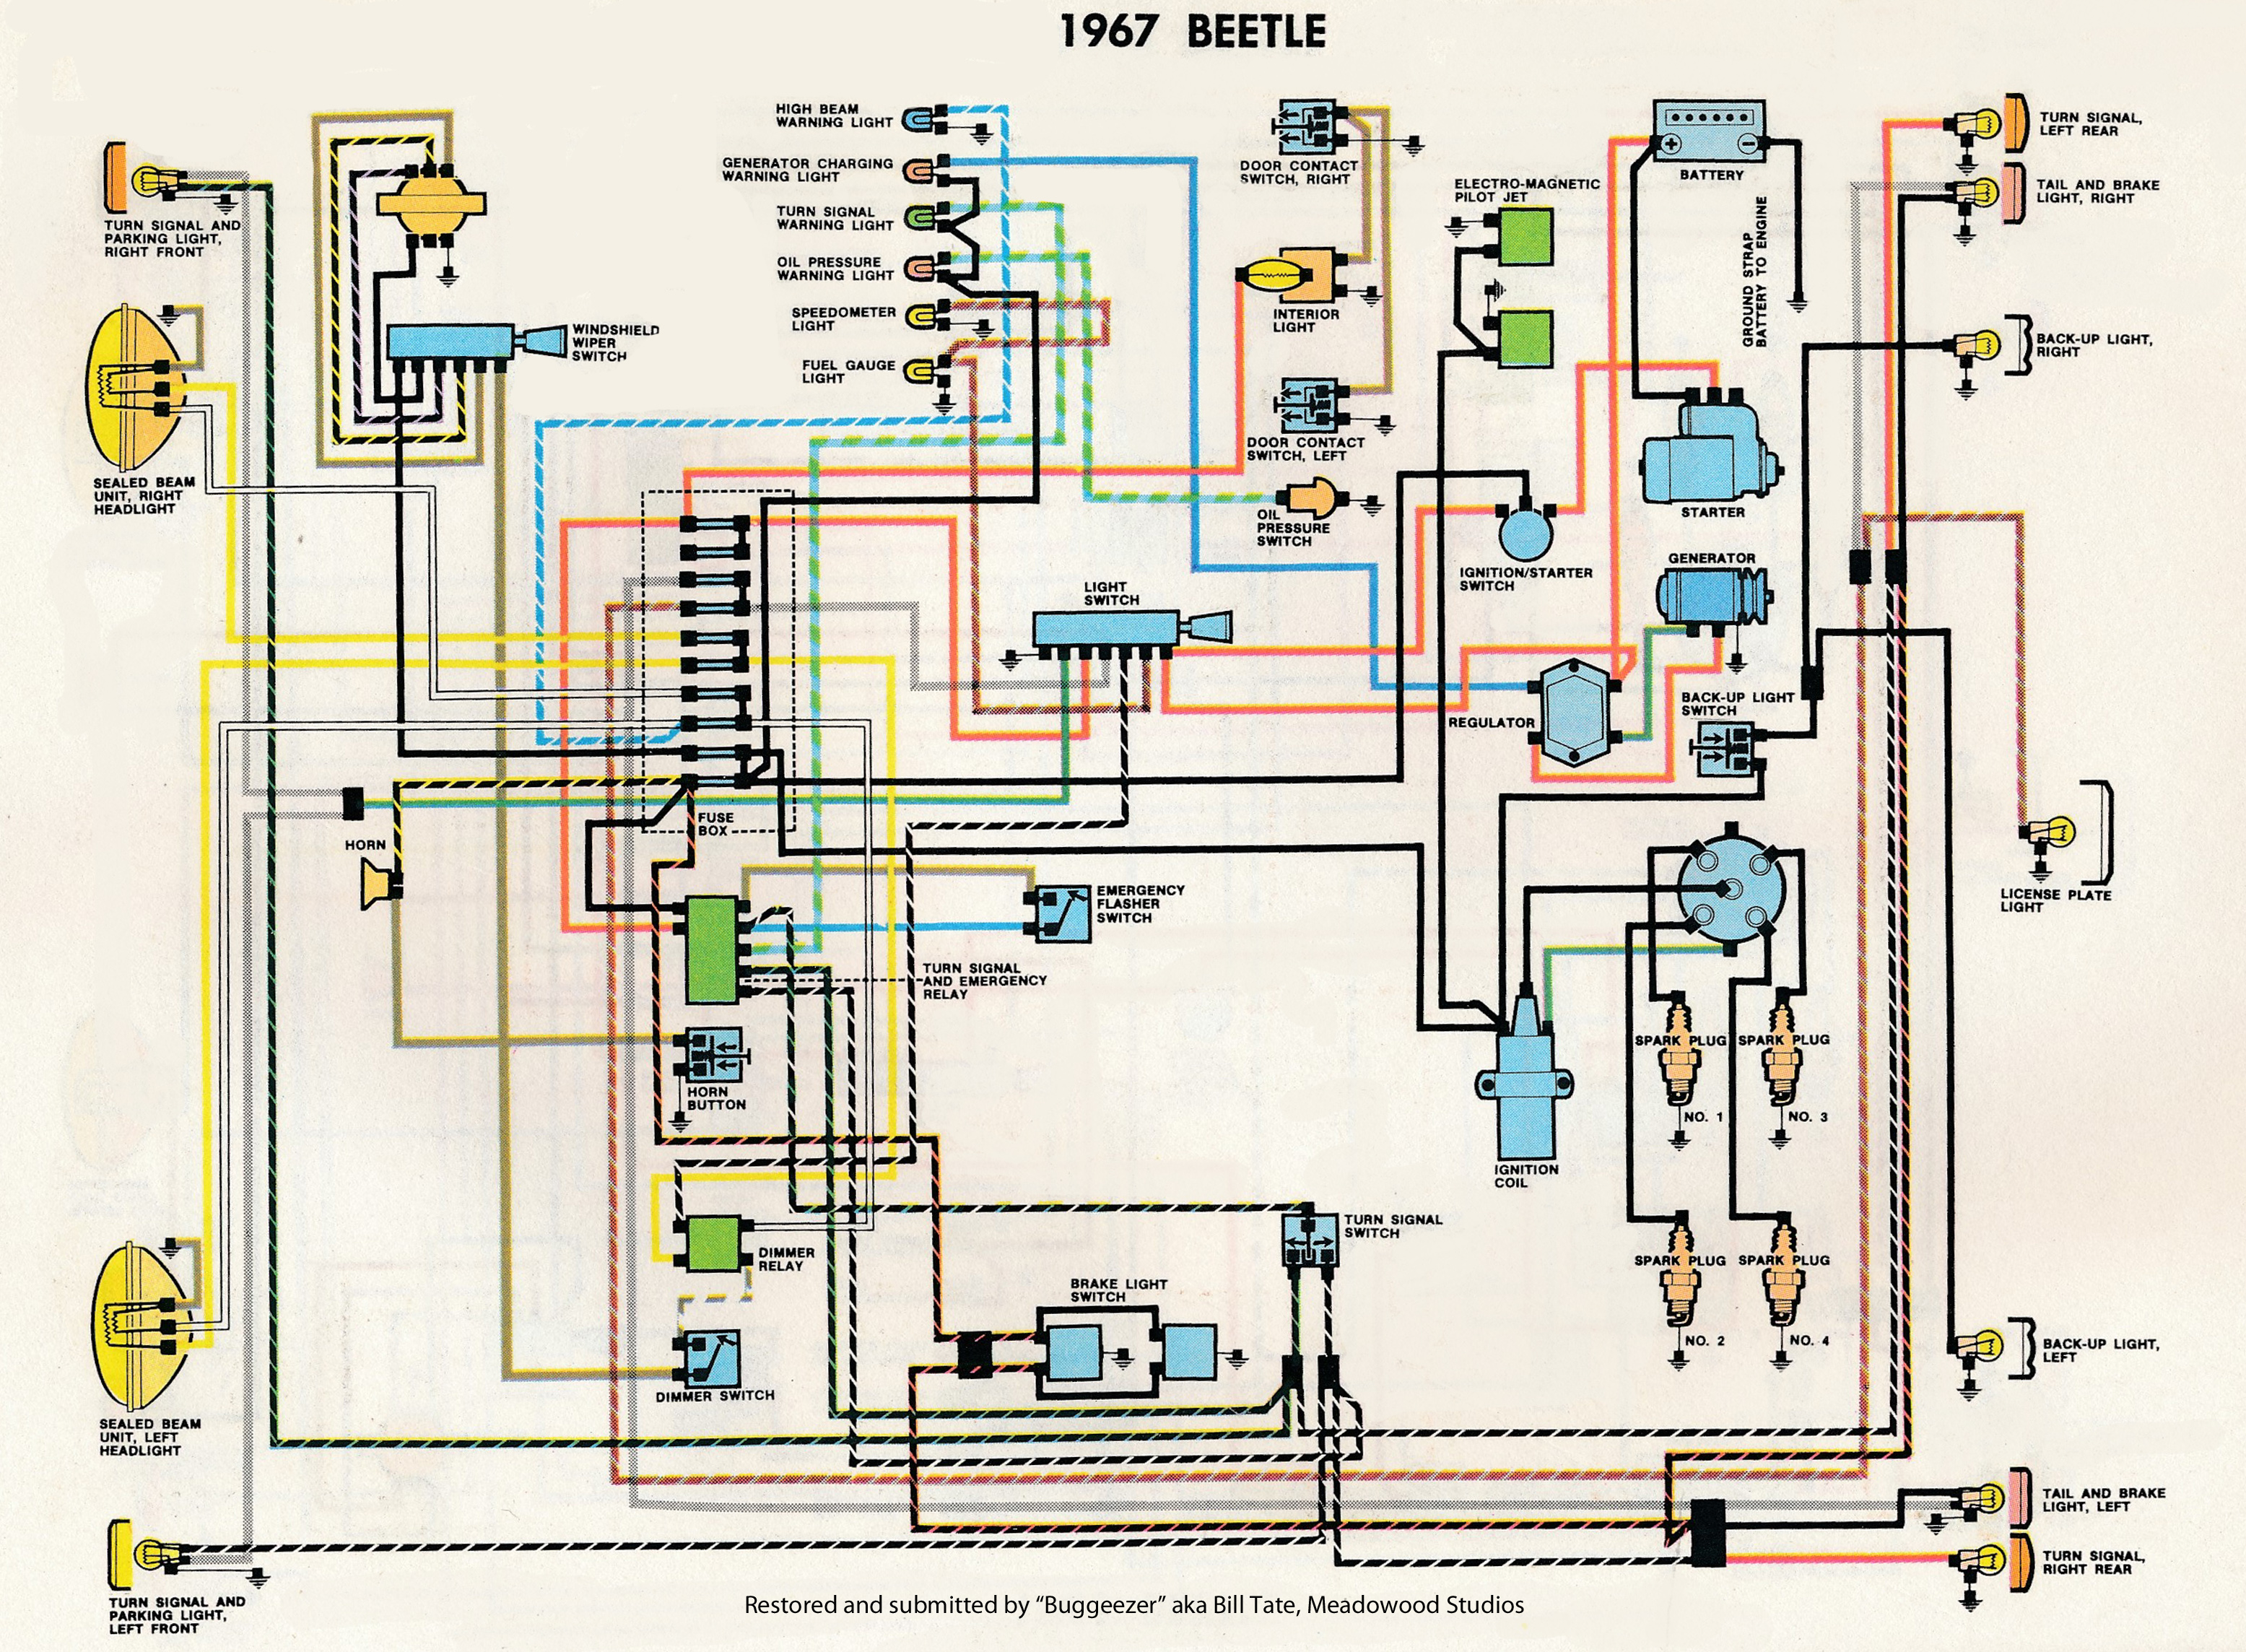 Type 1 Wiring Diagrams 1967 Mustang Fuse Box Diagram 66 Ford